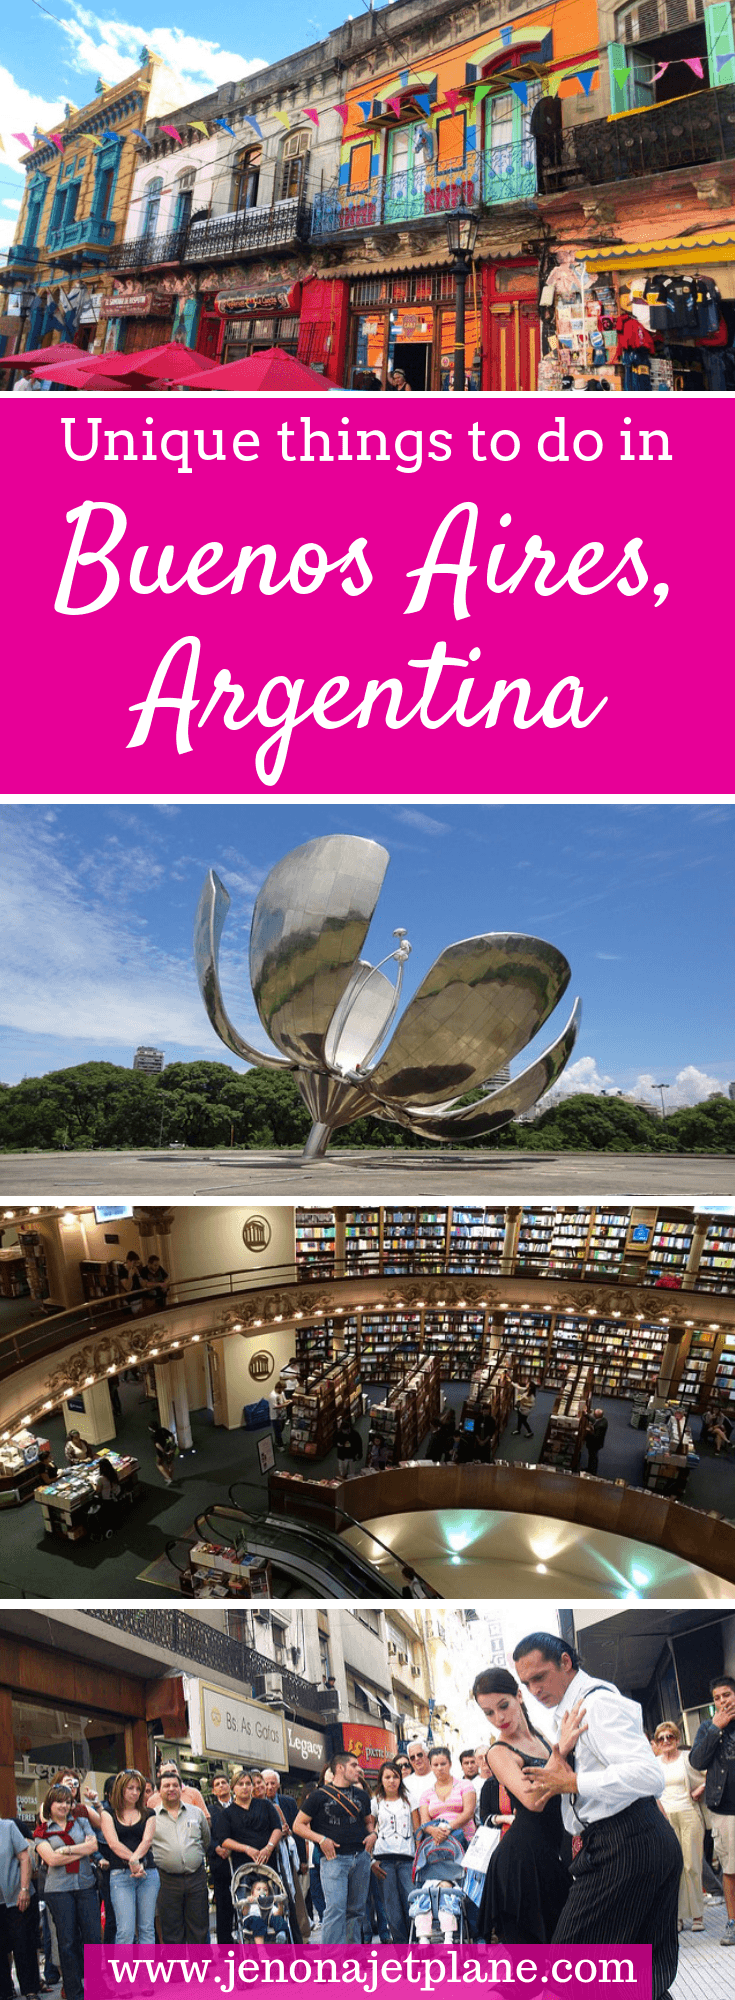 Looking for unique things to do in Buenos Aires, Argentina? From going on a parilla tour to visiting the grave of Eva Peron, these are 8 activities you won't want to miss. Save to your travel board for future reference. #argentinatravel #buenosairesargentina #buenosairestravel #buenosairesargentinathingstodo #buenosairesthingstodo #travelsouthamerica